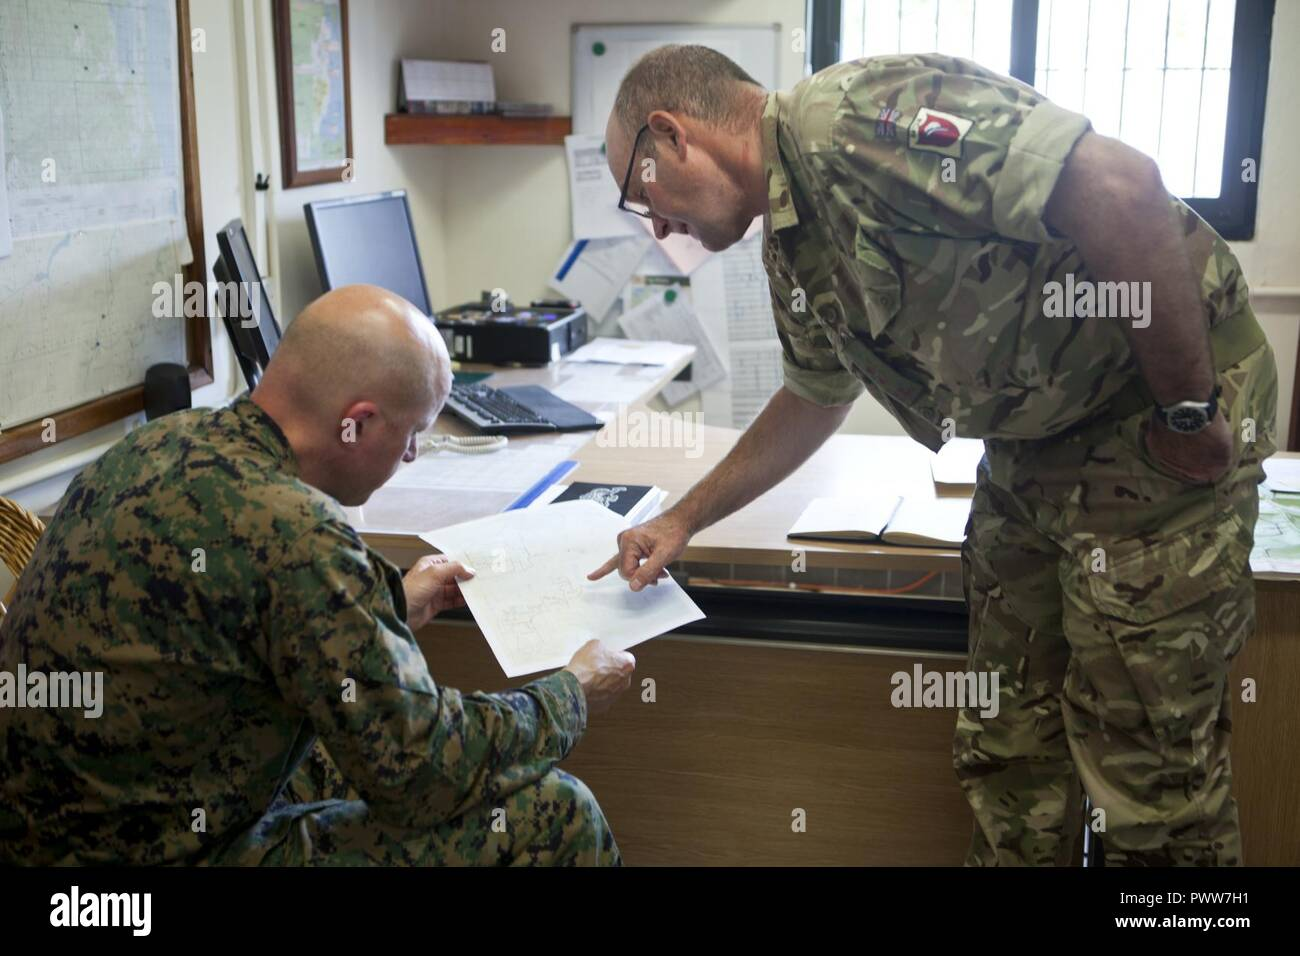 U.S. Marine Col. Michael V. Samarov, the commander of Special Purpose Marine Air-Ground Task Force - Southern Command, meets with British Army Lt. Col. Simon Walton, British Army Training Support Unit Belize at Price Barracks in Ladyville, Belize, June 21, 2017. Samarov visited elements of his unit and met with various key leaders during his circulation to different countries in Central America in which SPMAGTF-SC is operating. The Marines and sailors of SPMAGTF-SC are deployed to Central America for the next six months to conduct security cooperation training and engineering projects with the - Stock Image